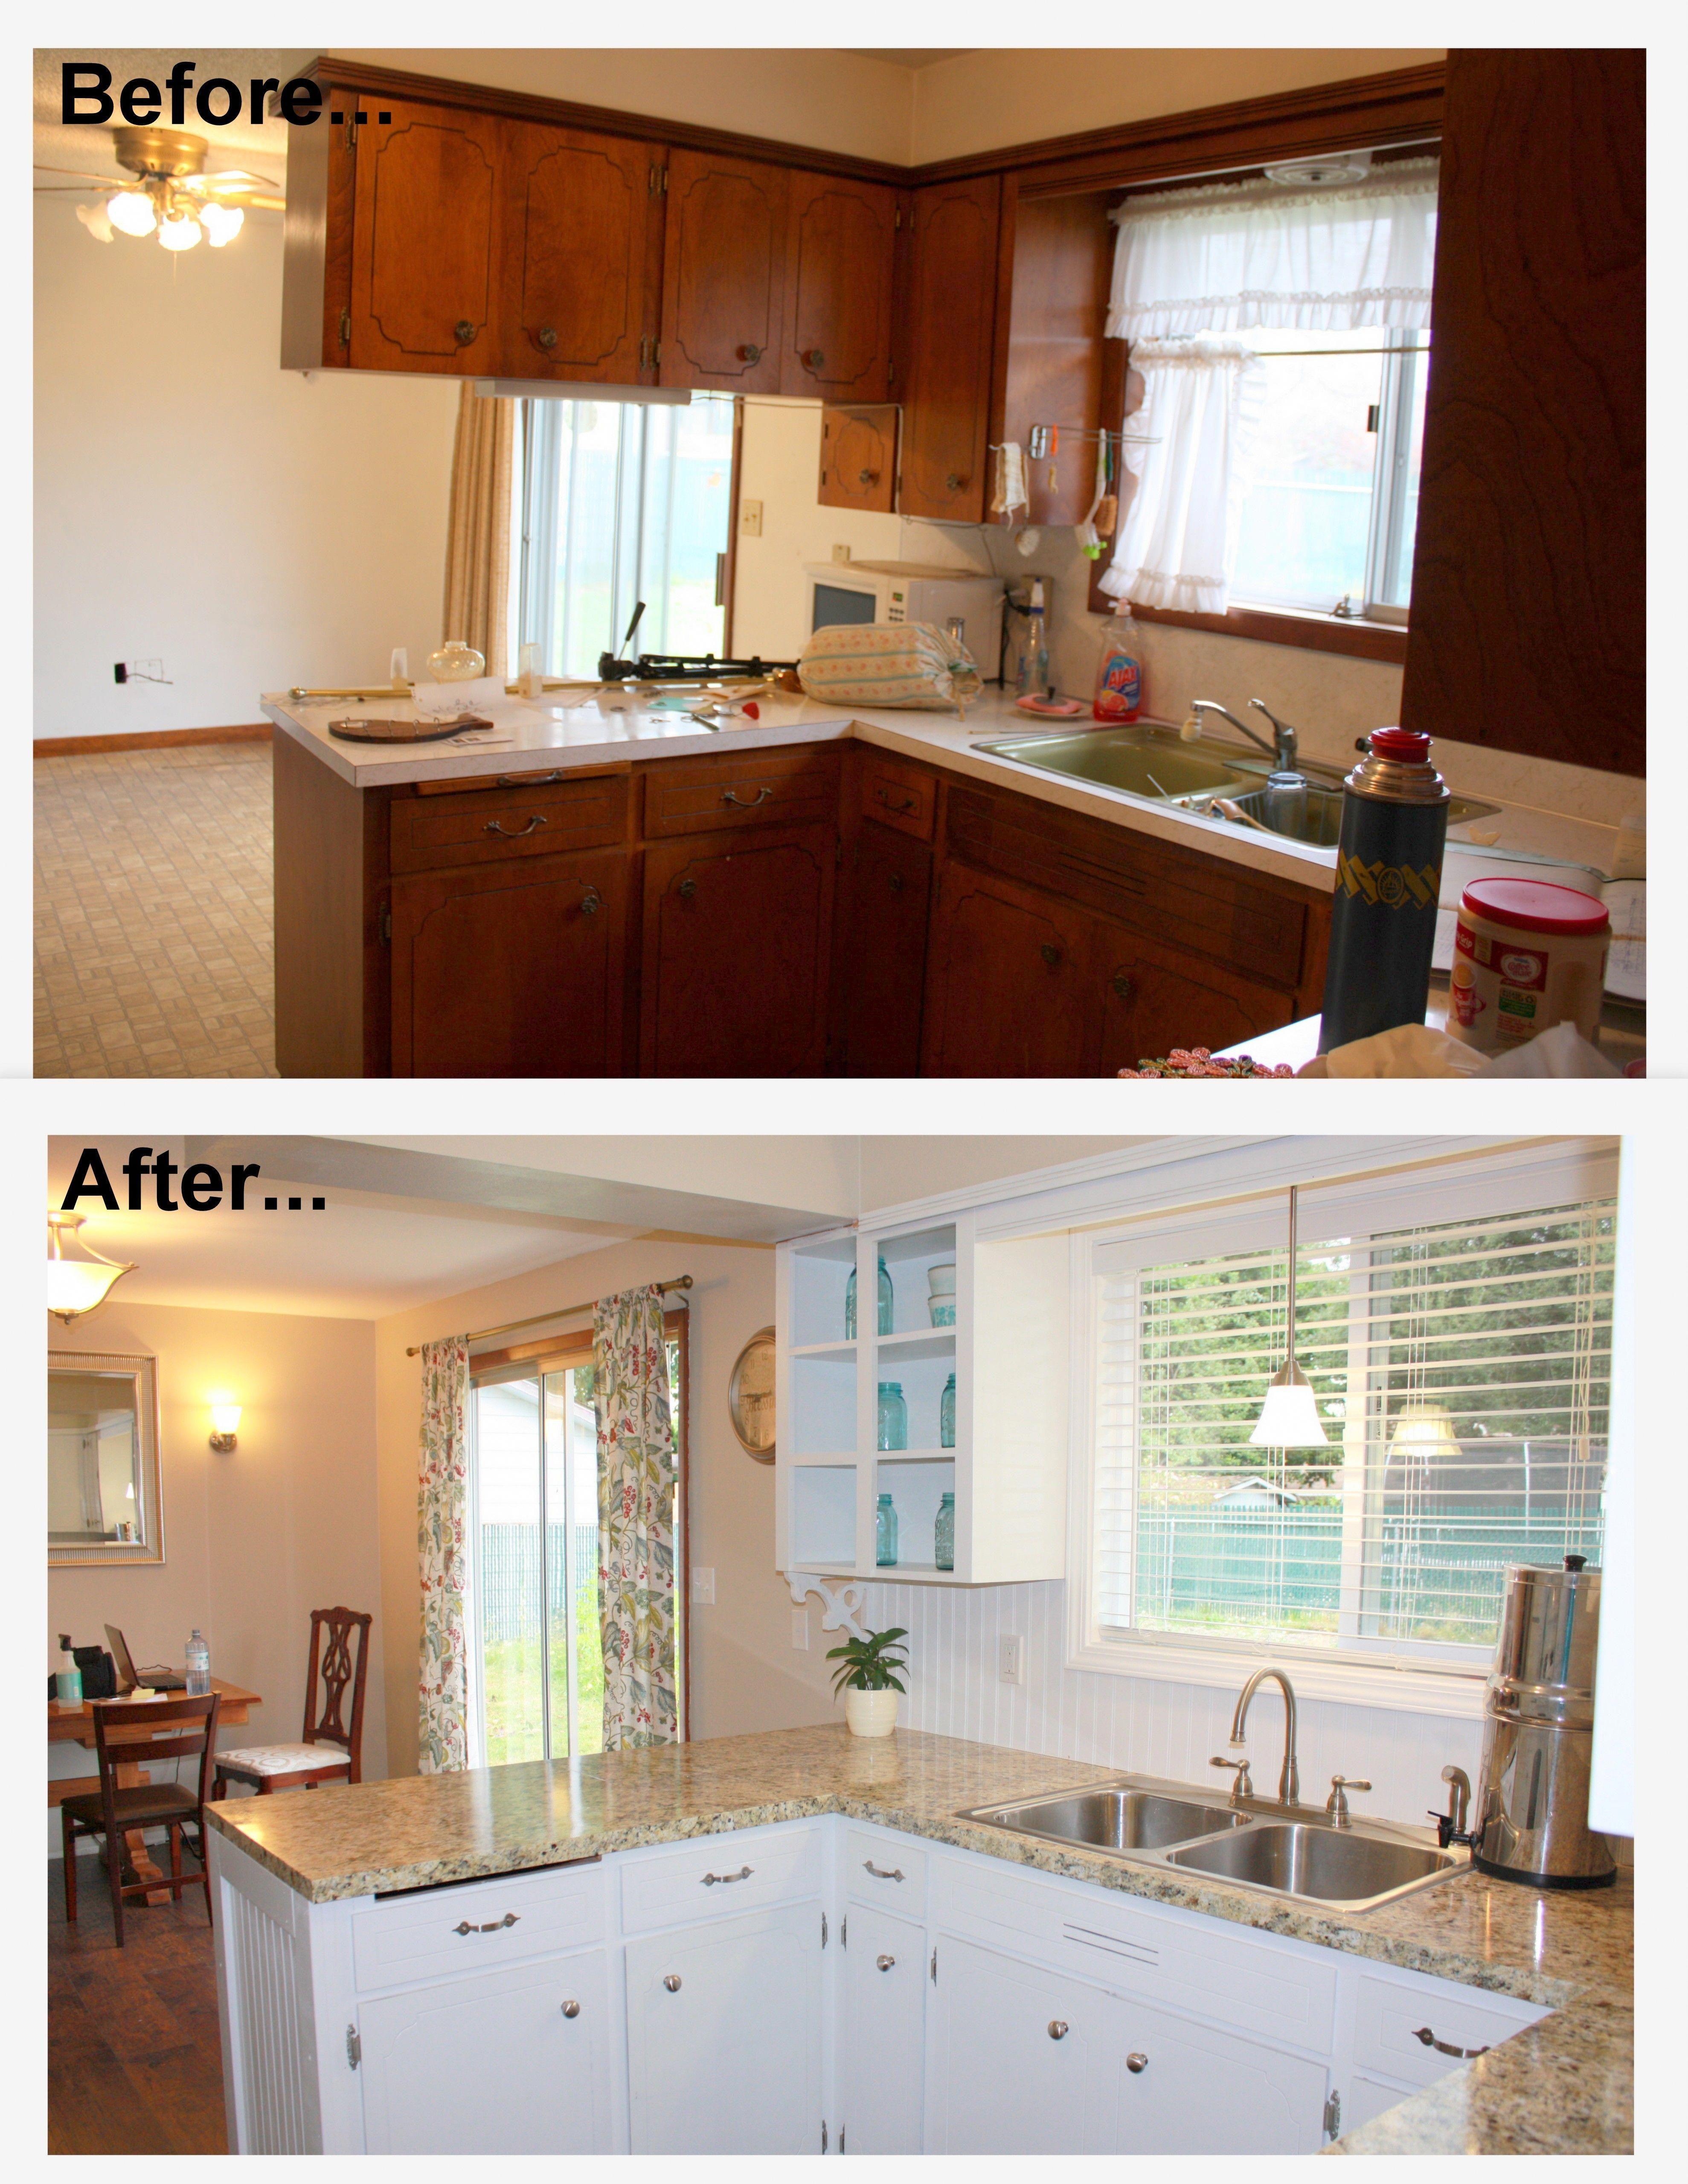 Remake of the kitchen of the '60s before and after. Wooden